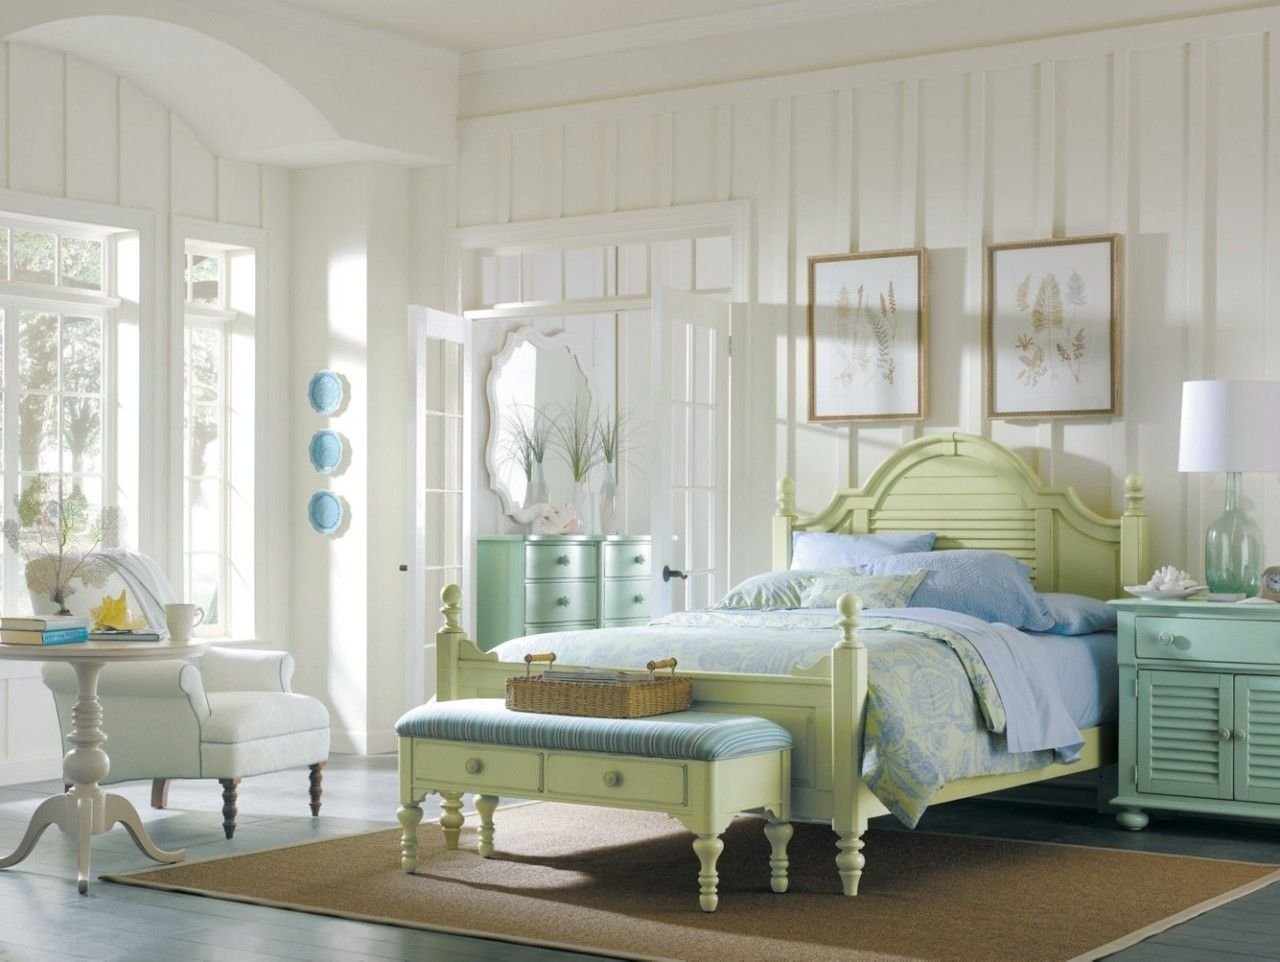 Seaside Bedroom Lexington Seaside Retreat Furniture To Consider Getting And Using